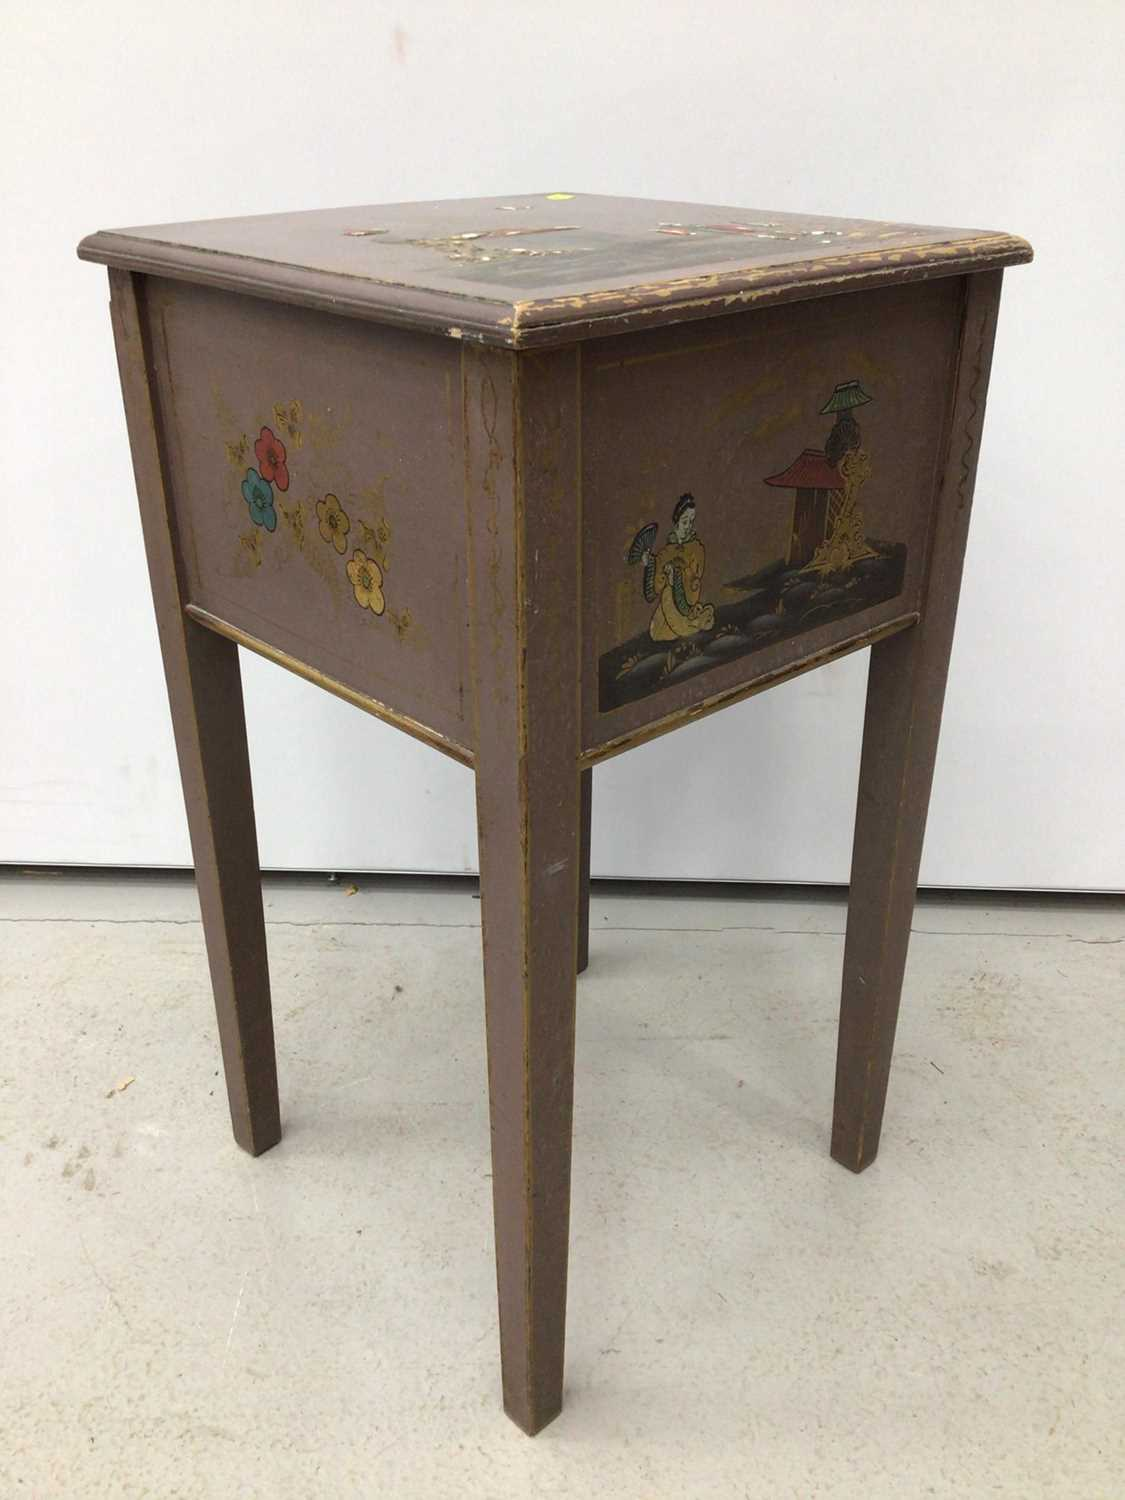 Oriental painted sewing table with mirror H63, W35.5cm mirror H35, W28.5cm - Image 5 of 5